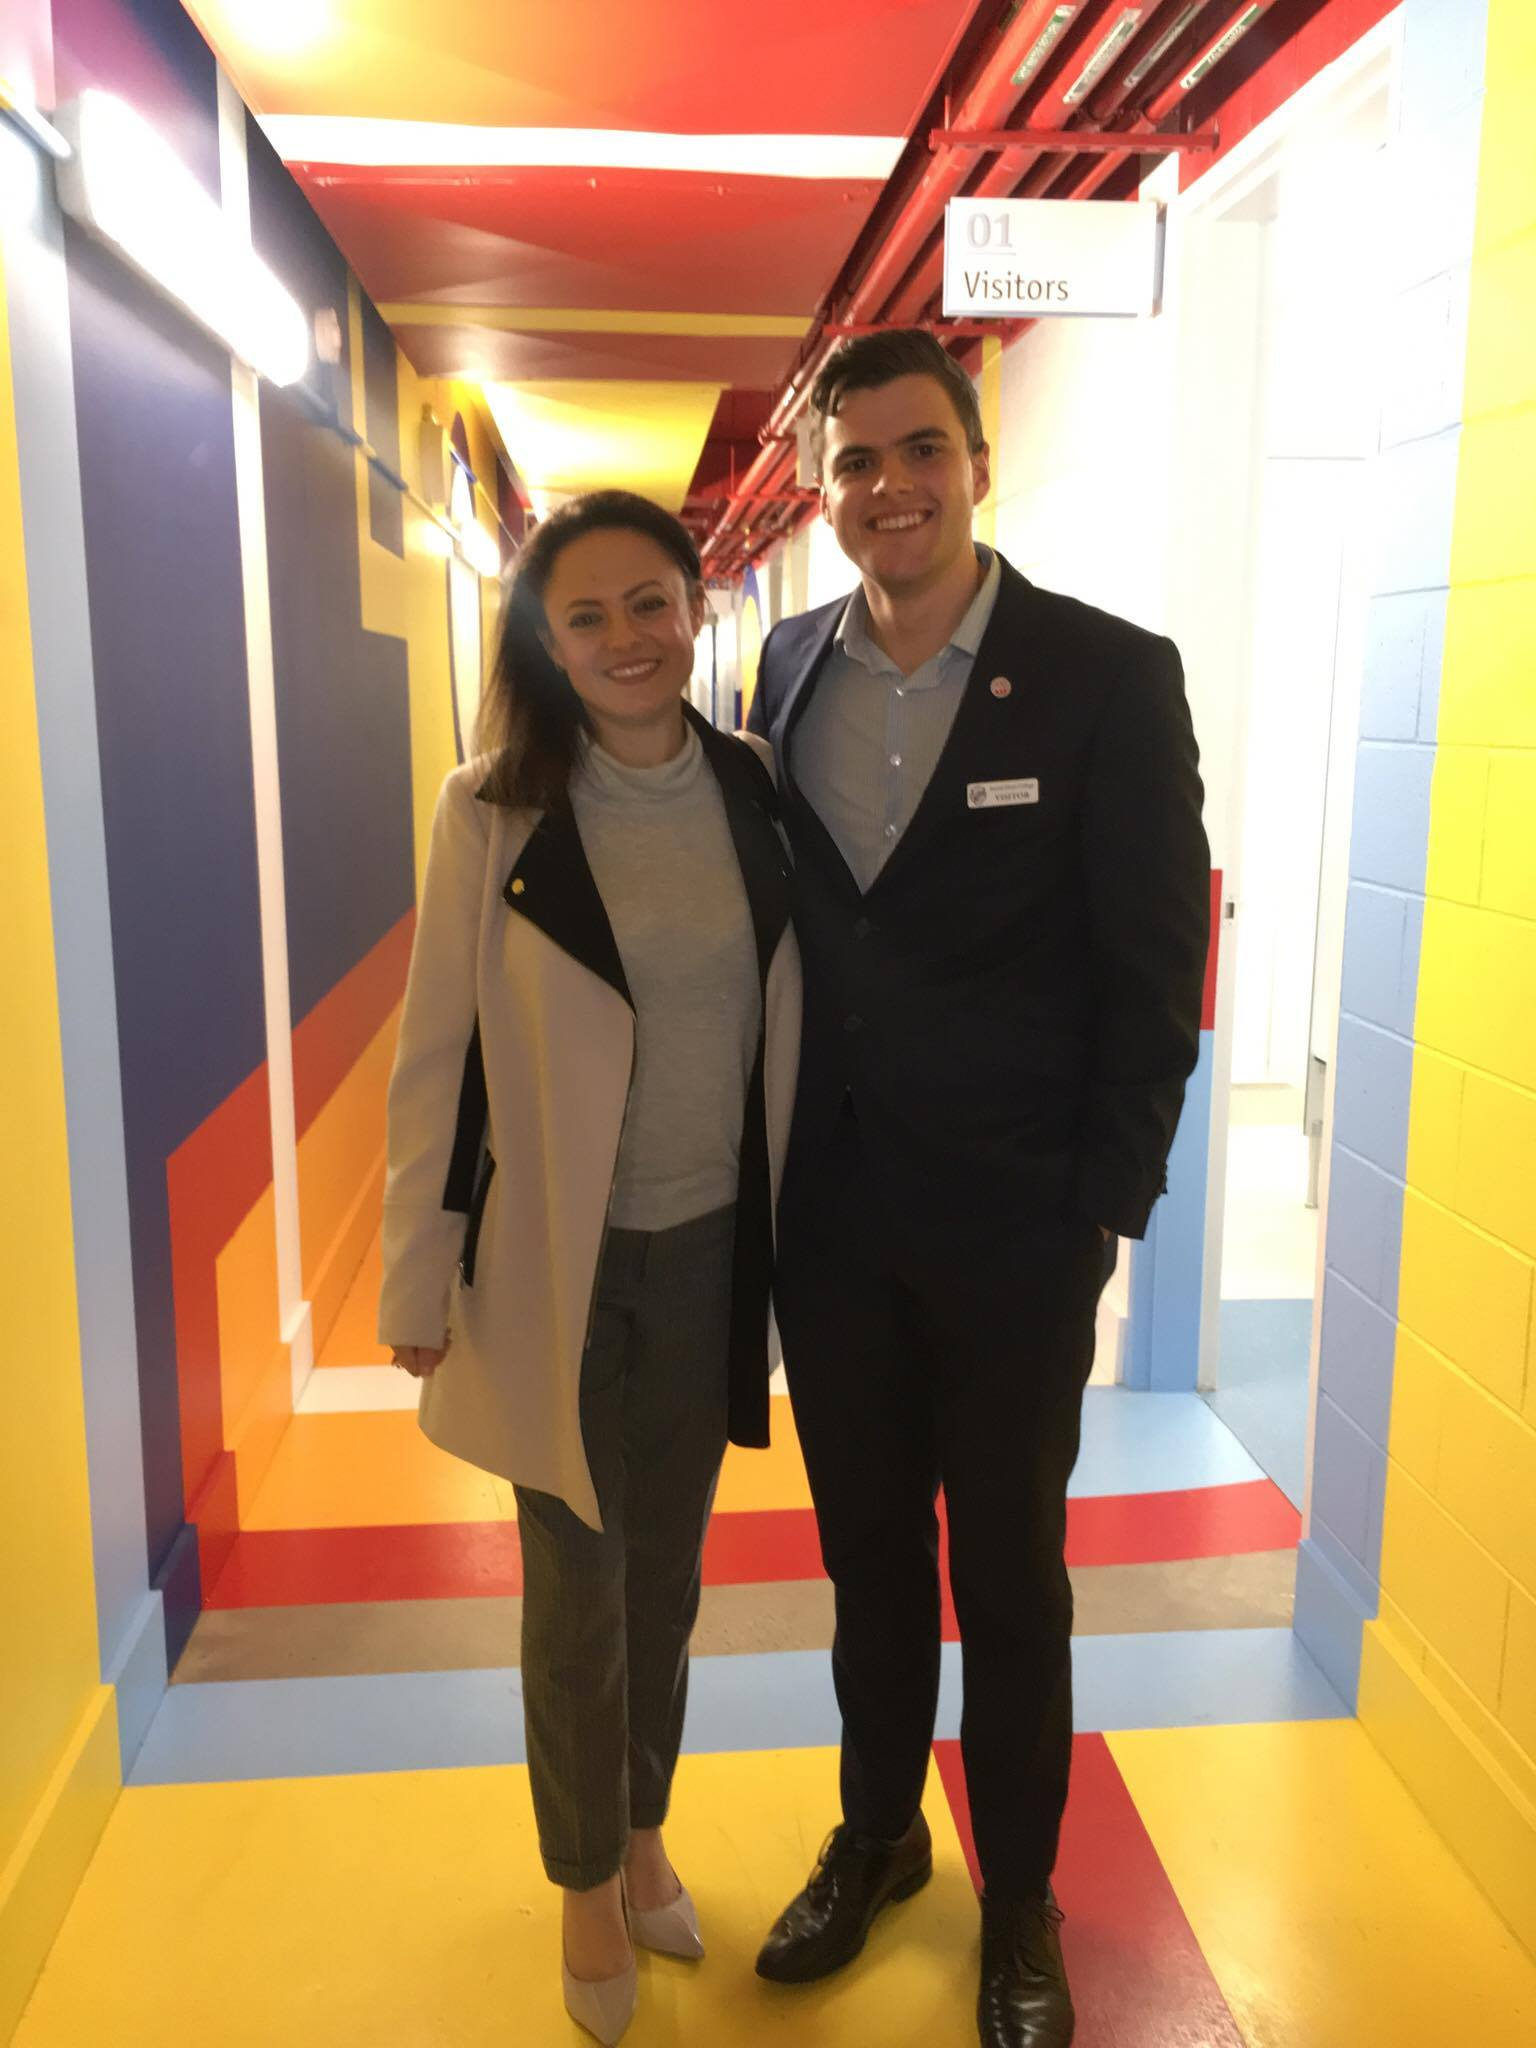 Both SA Westpac future leaders graduated from Sacred Heart College (20 years apart...) What are the odds! Back there to address the Year 12s and tour the new facilities